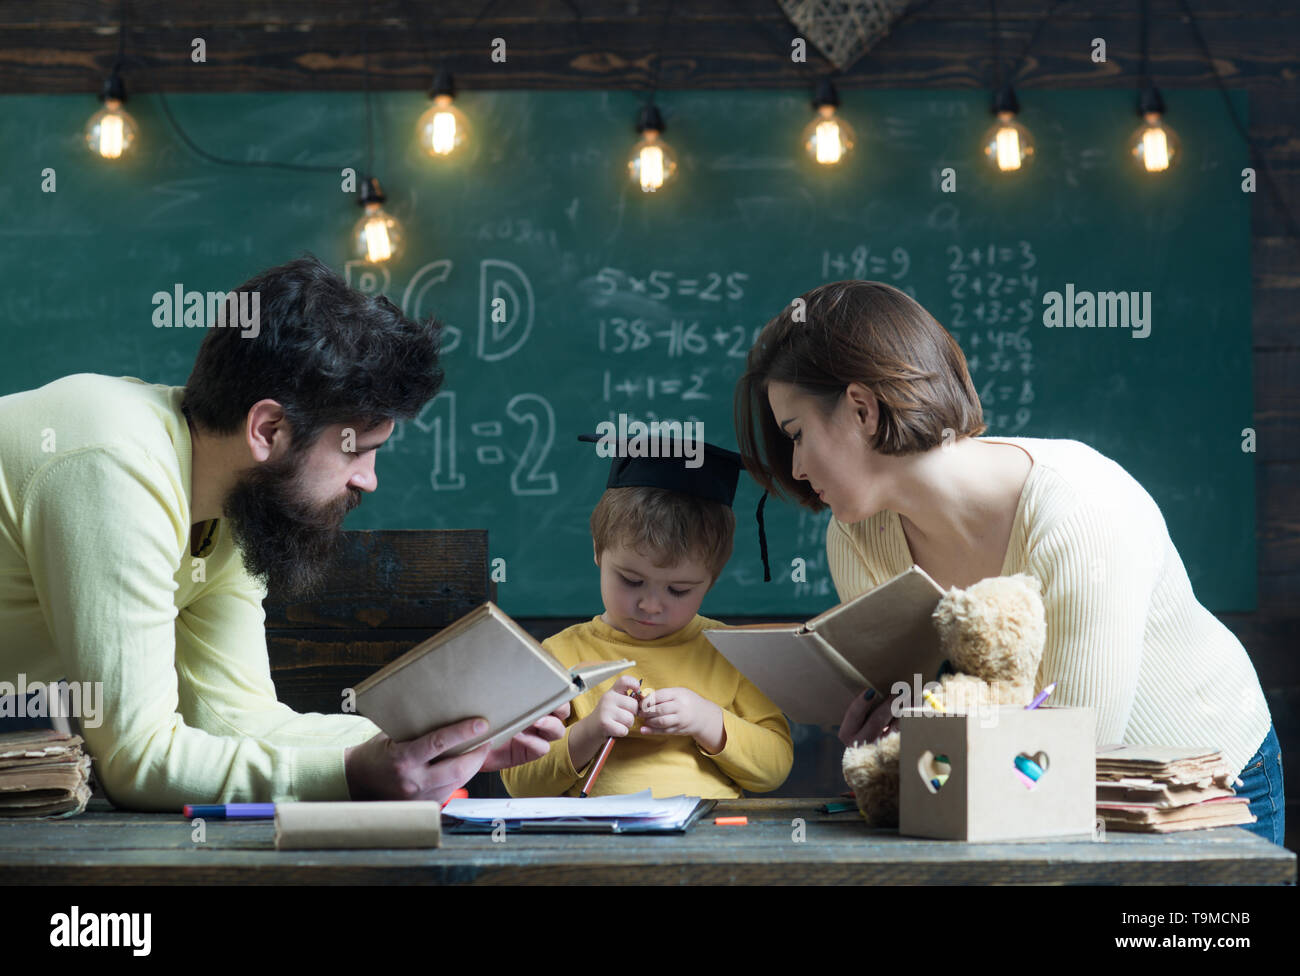 Homeschooling concept. Father and mother reading books, teaching their son, chalkboard on background. Family cares about education of their son. Boy - Stock Image